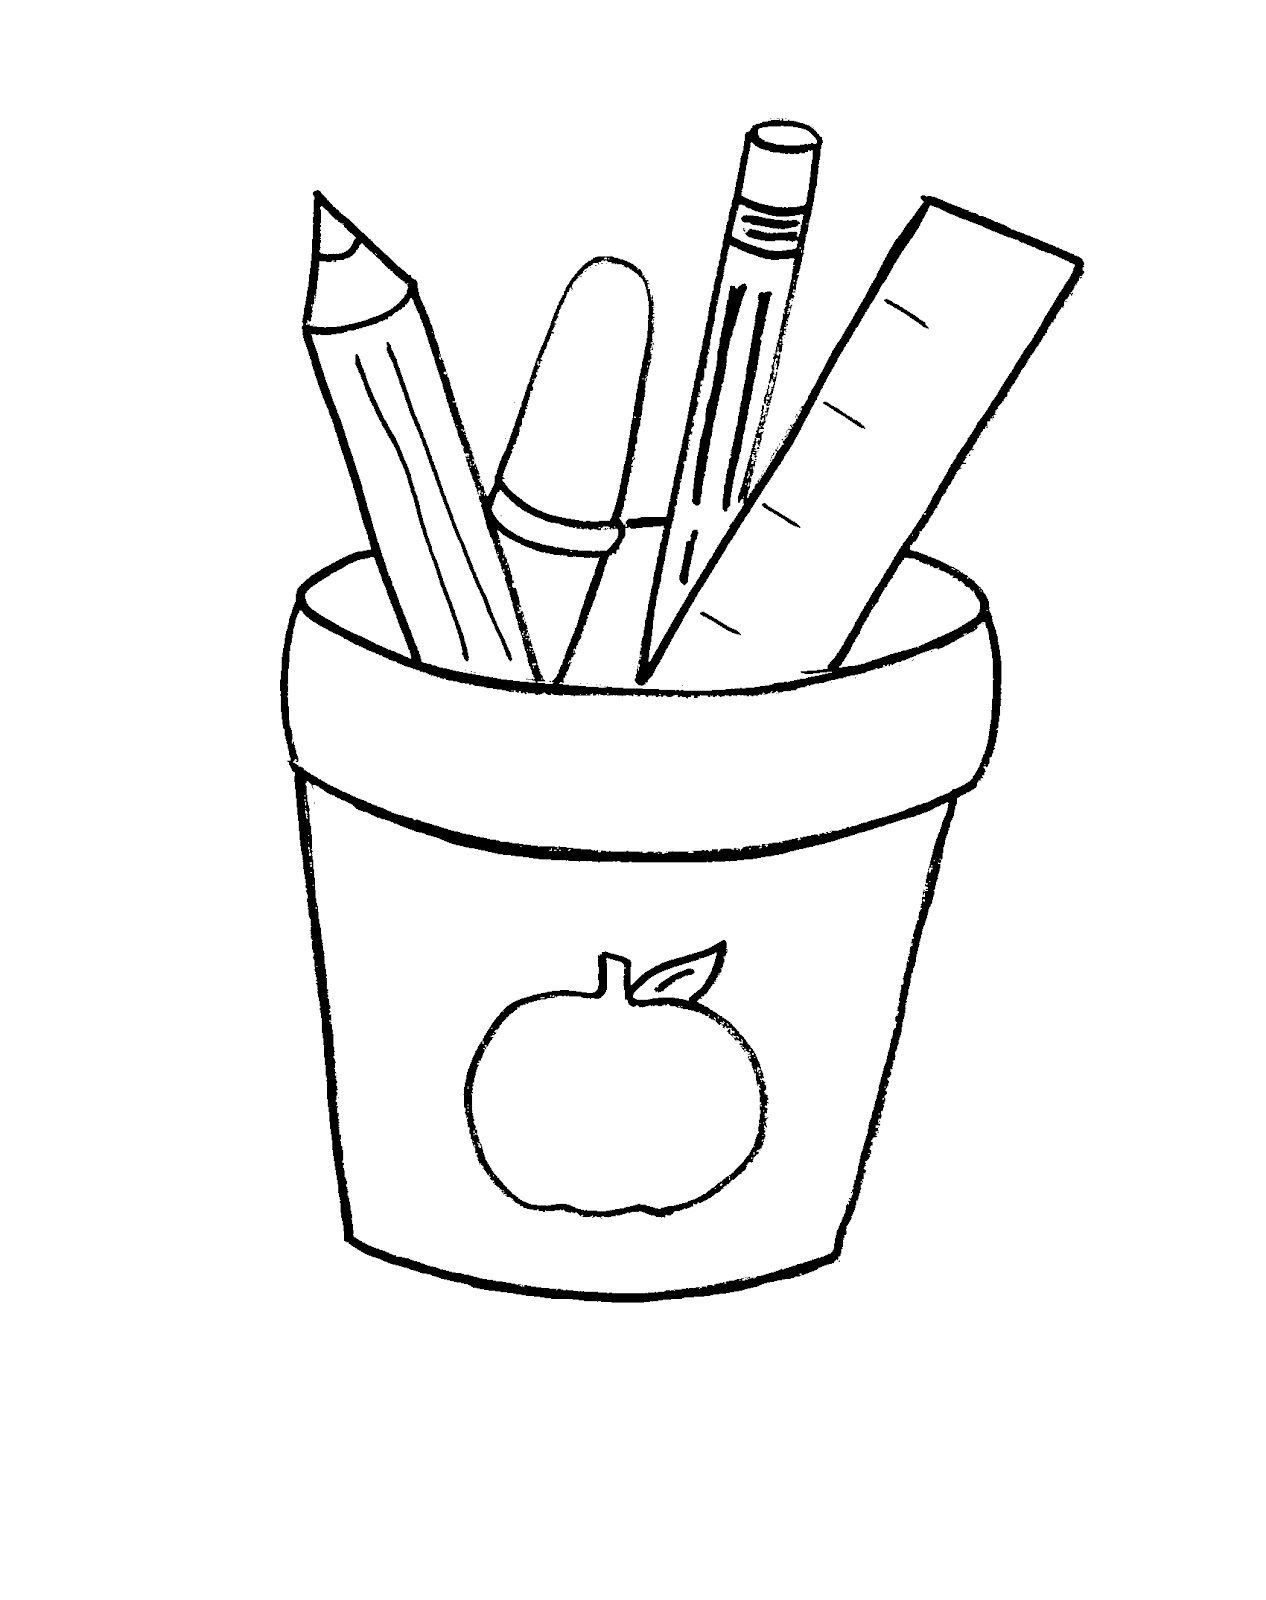 Ginny Weasley Coloring Pages At Getcolorings